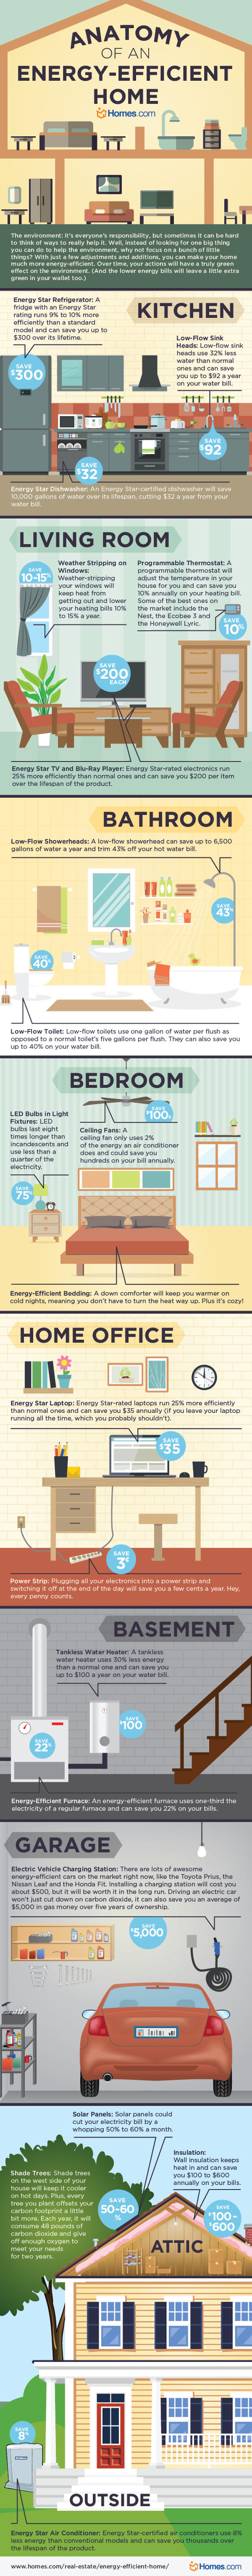 How To Make Your Home Greener?